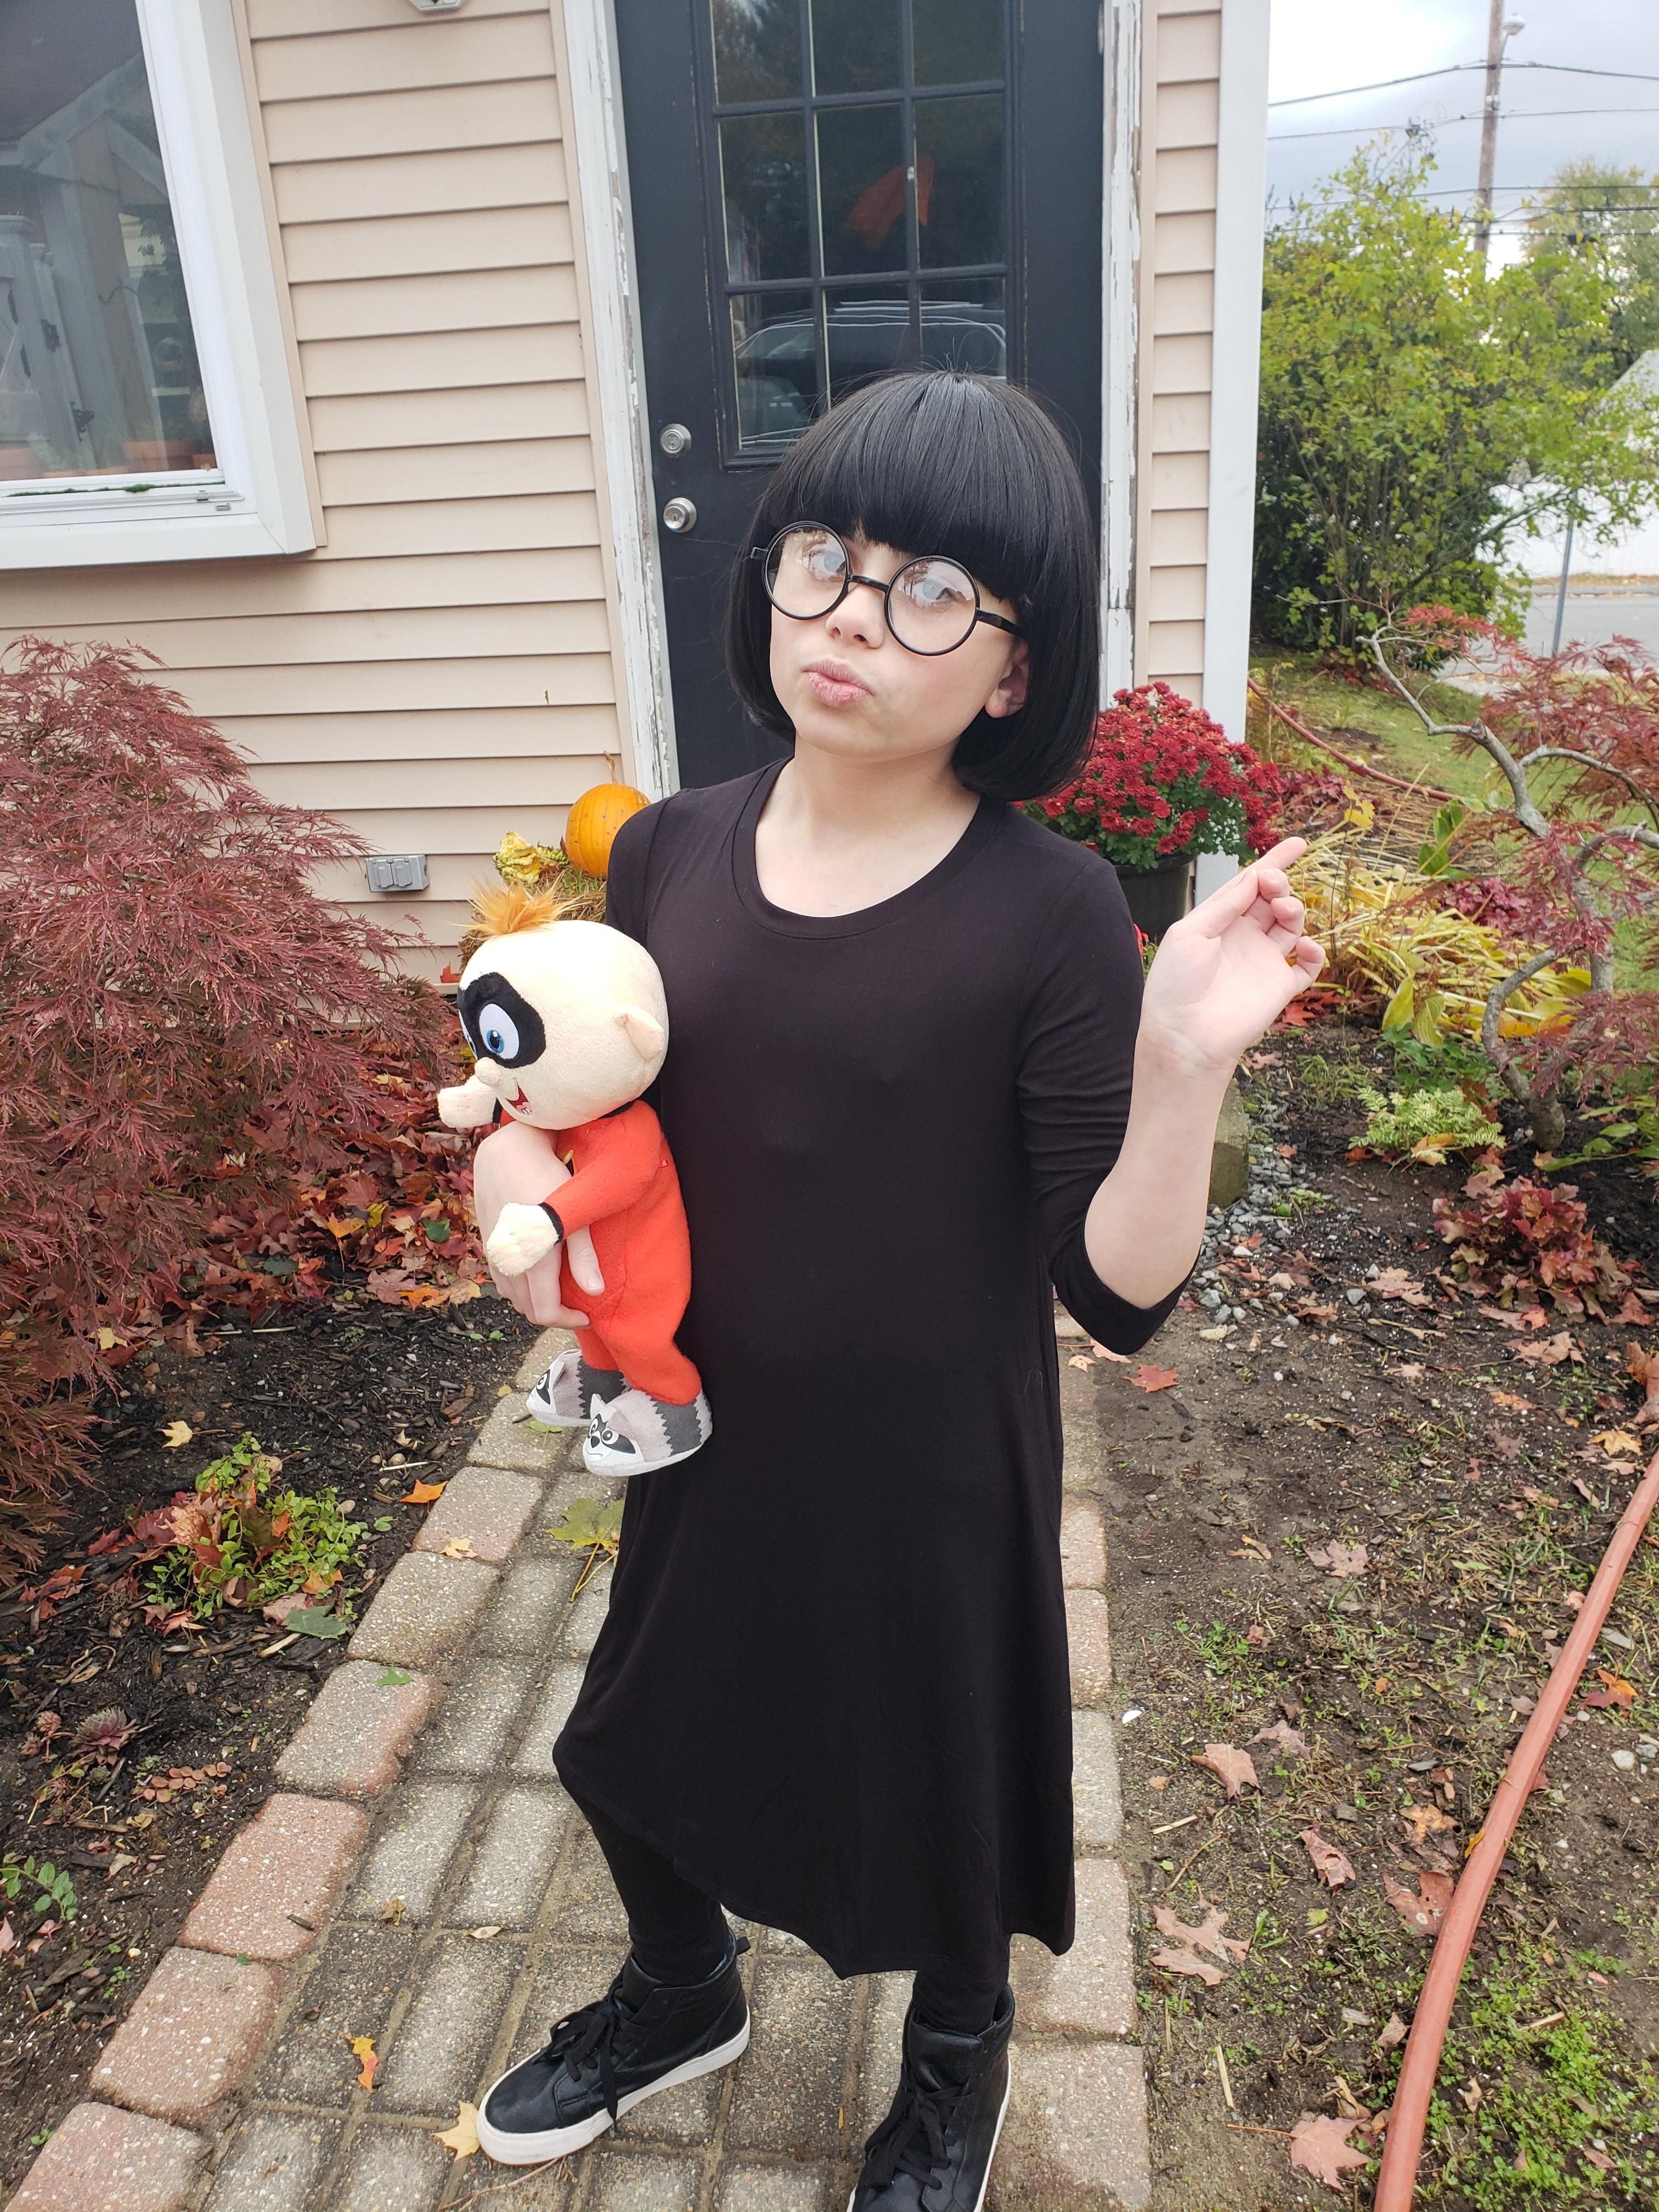 I think my son makes a good edna mode cool halloween